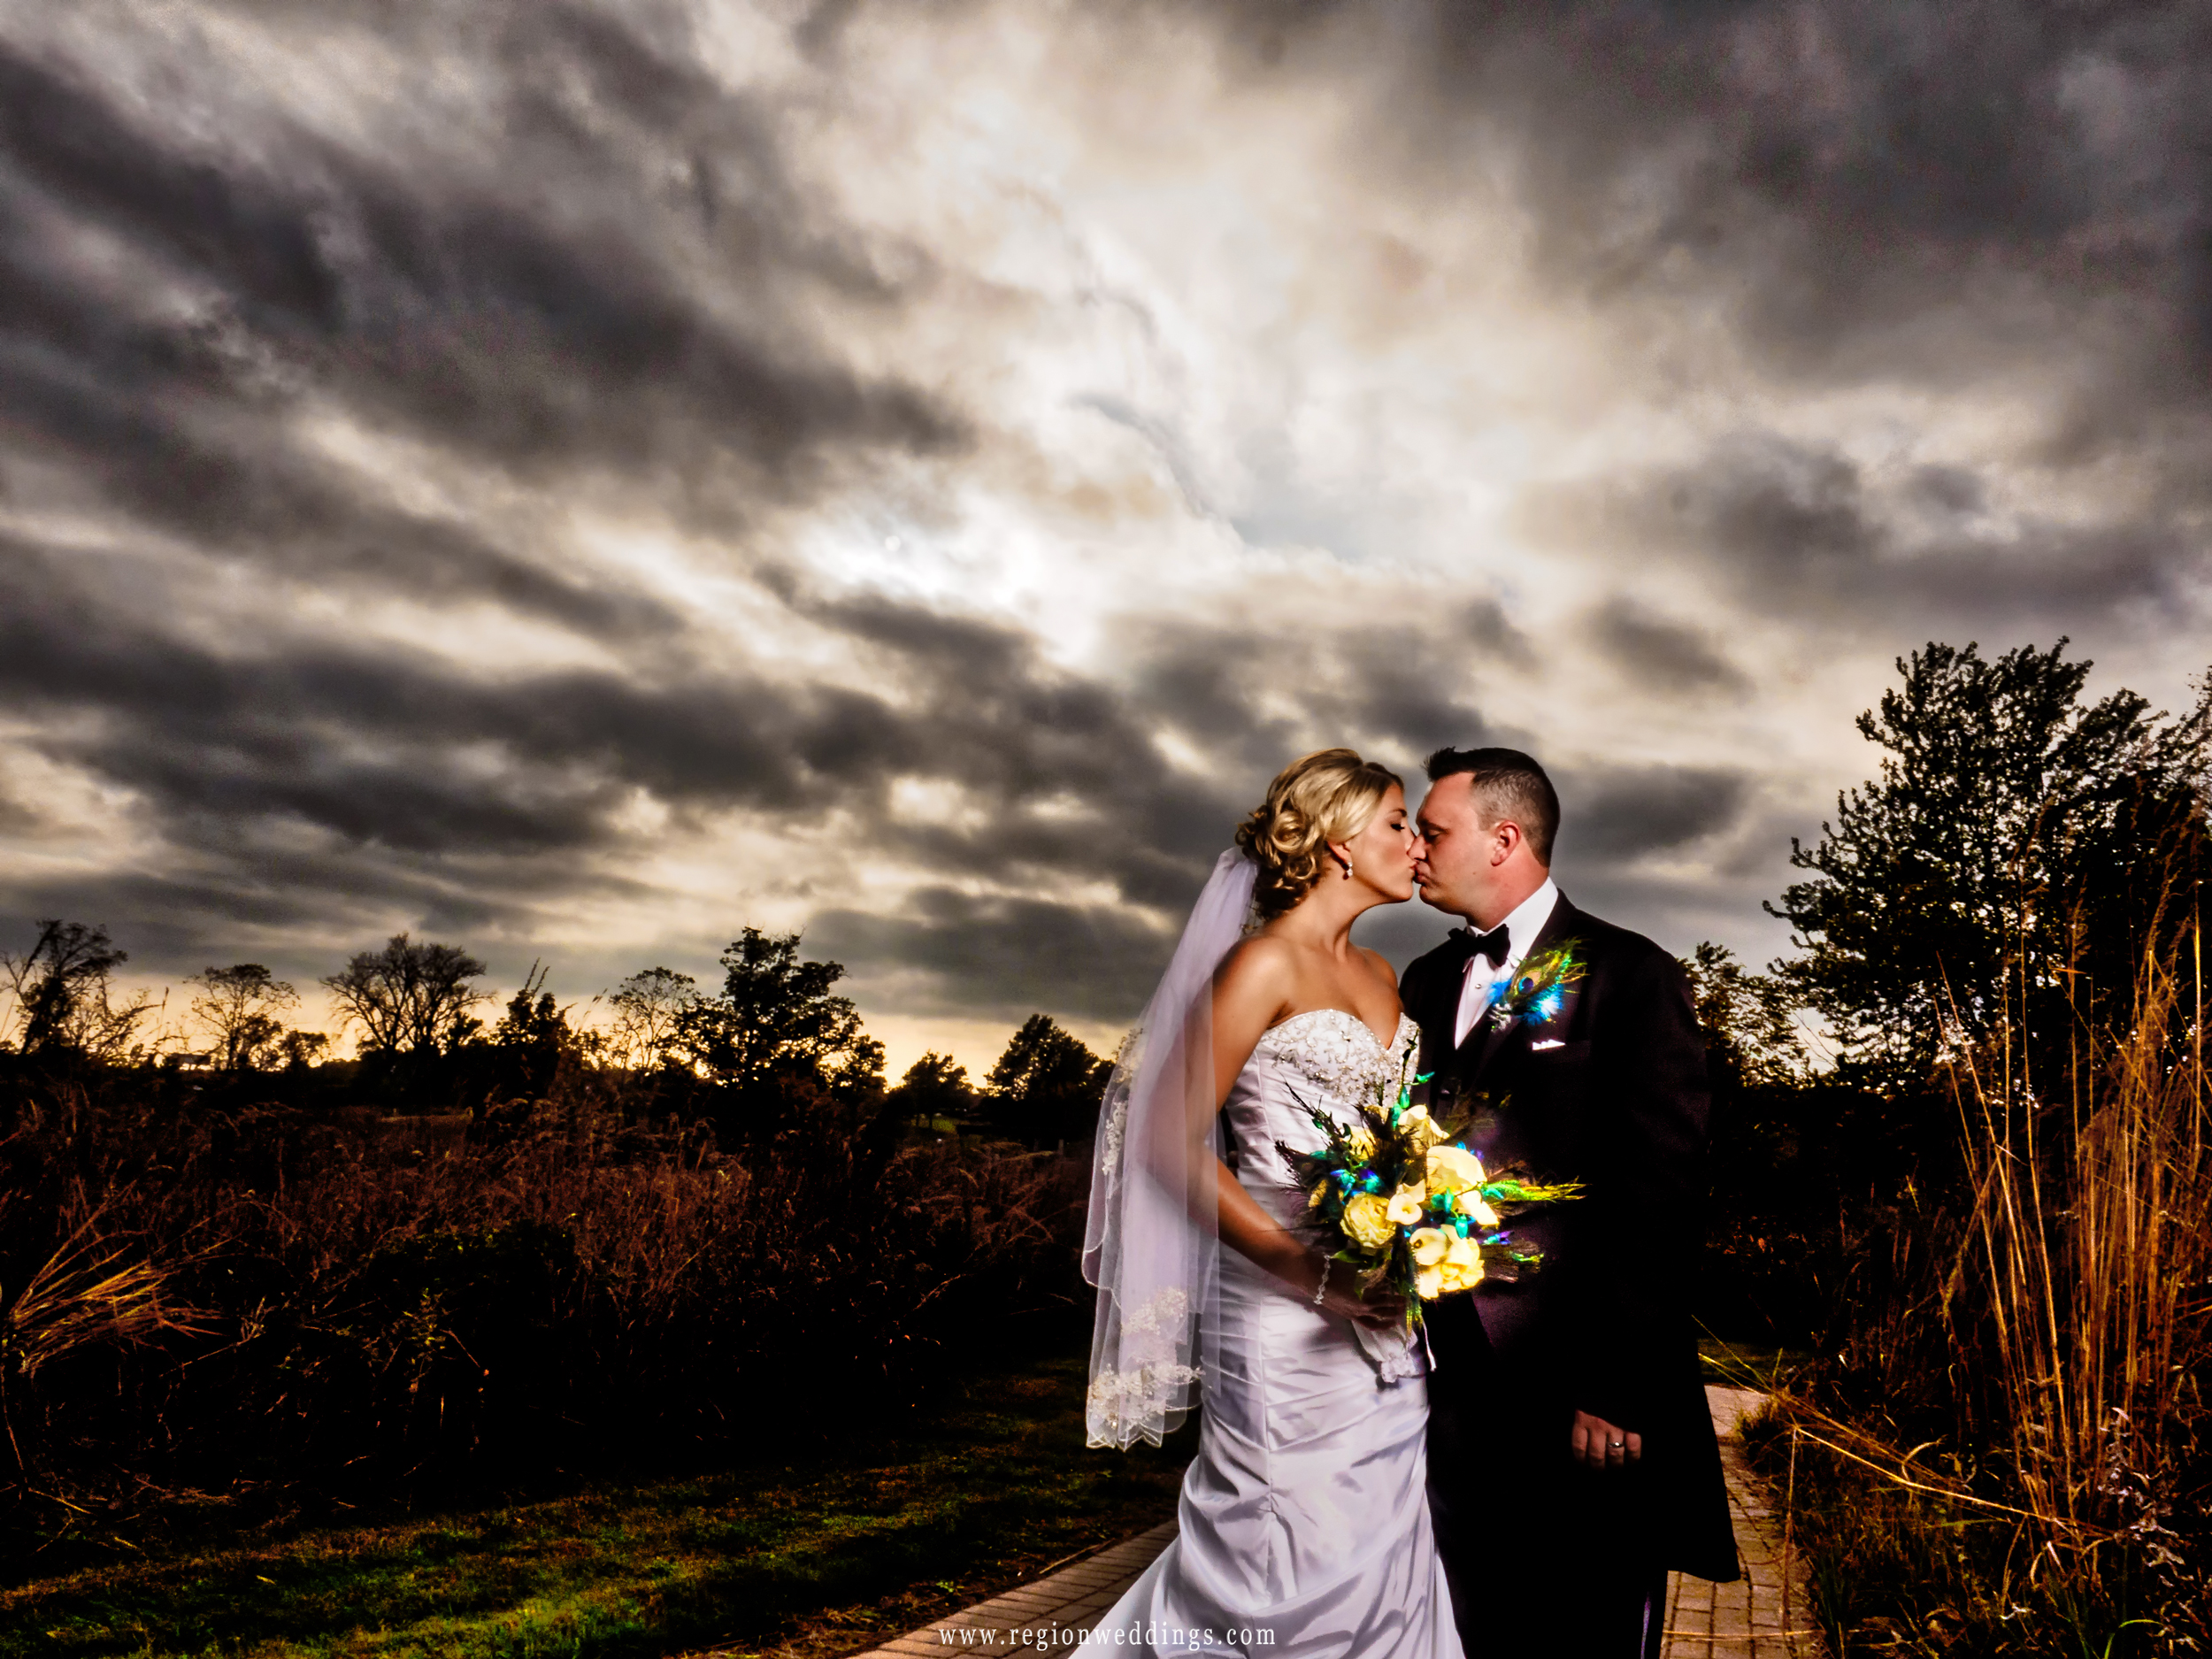 Dramatic clouds descend upon Coffee Creek Nature Preserve during wedding pictures.